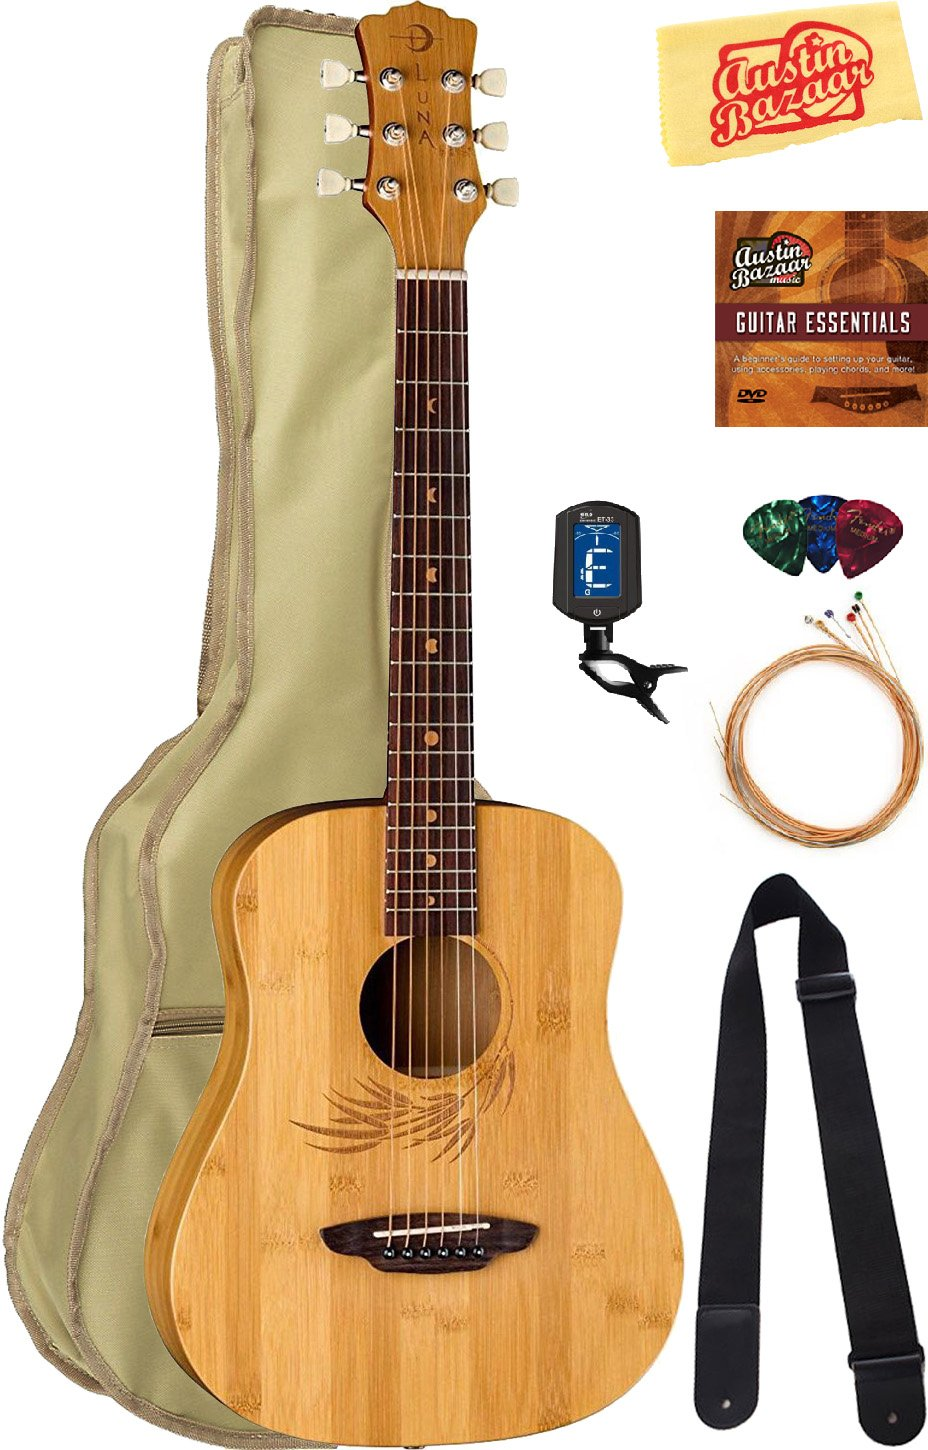 Luna Safari Bamboo Travel Guitar Bundle with Gig Bag, Strap, Strings, Tuner, Picks, Austin Bazaar Instructional DVD, and Polishing Cloth by Luna Guitars